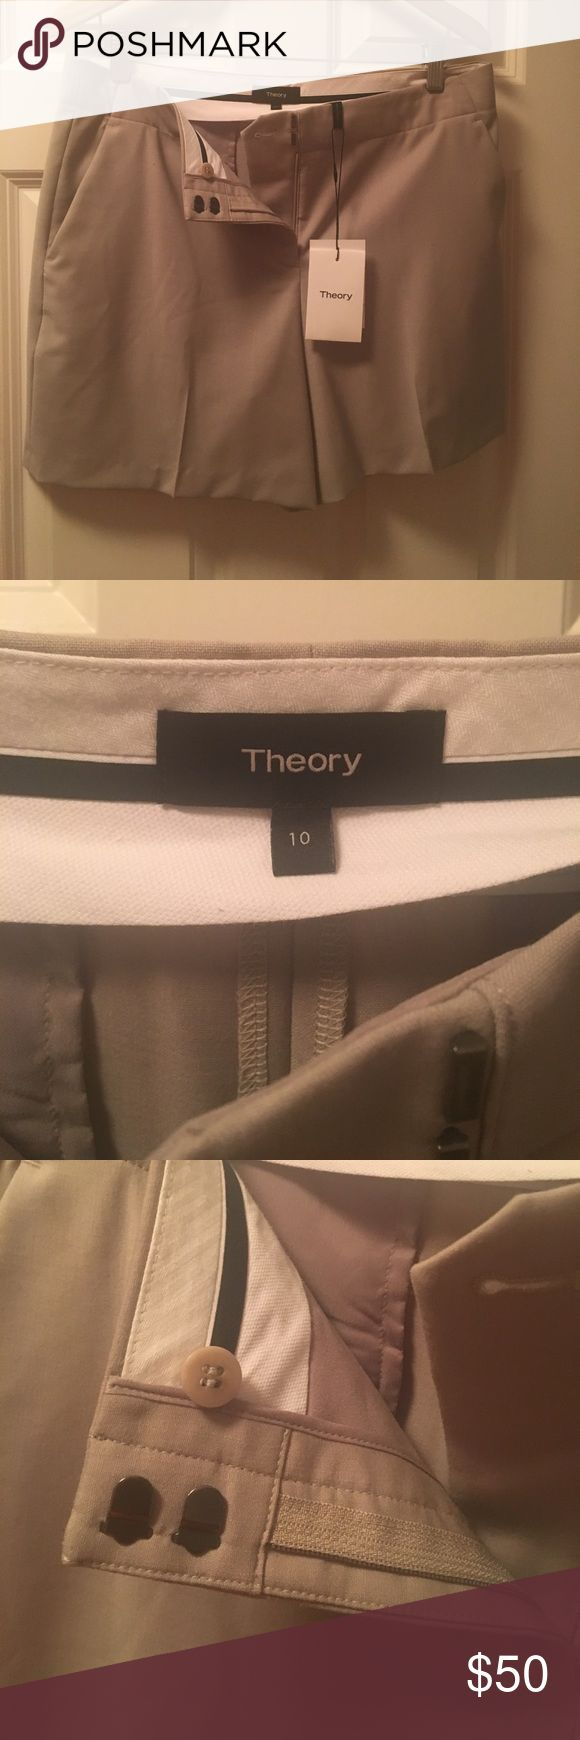 """Theory khaki dress shorts brand new with tags's, Theory Masibeth """"gray khakl tailored shorts with 4 inch inseam. Suiting material suitable for dressy look or golf. /Pockets at the hips, and two button pocket on the back. Size 10. Theory Shorts"""